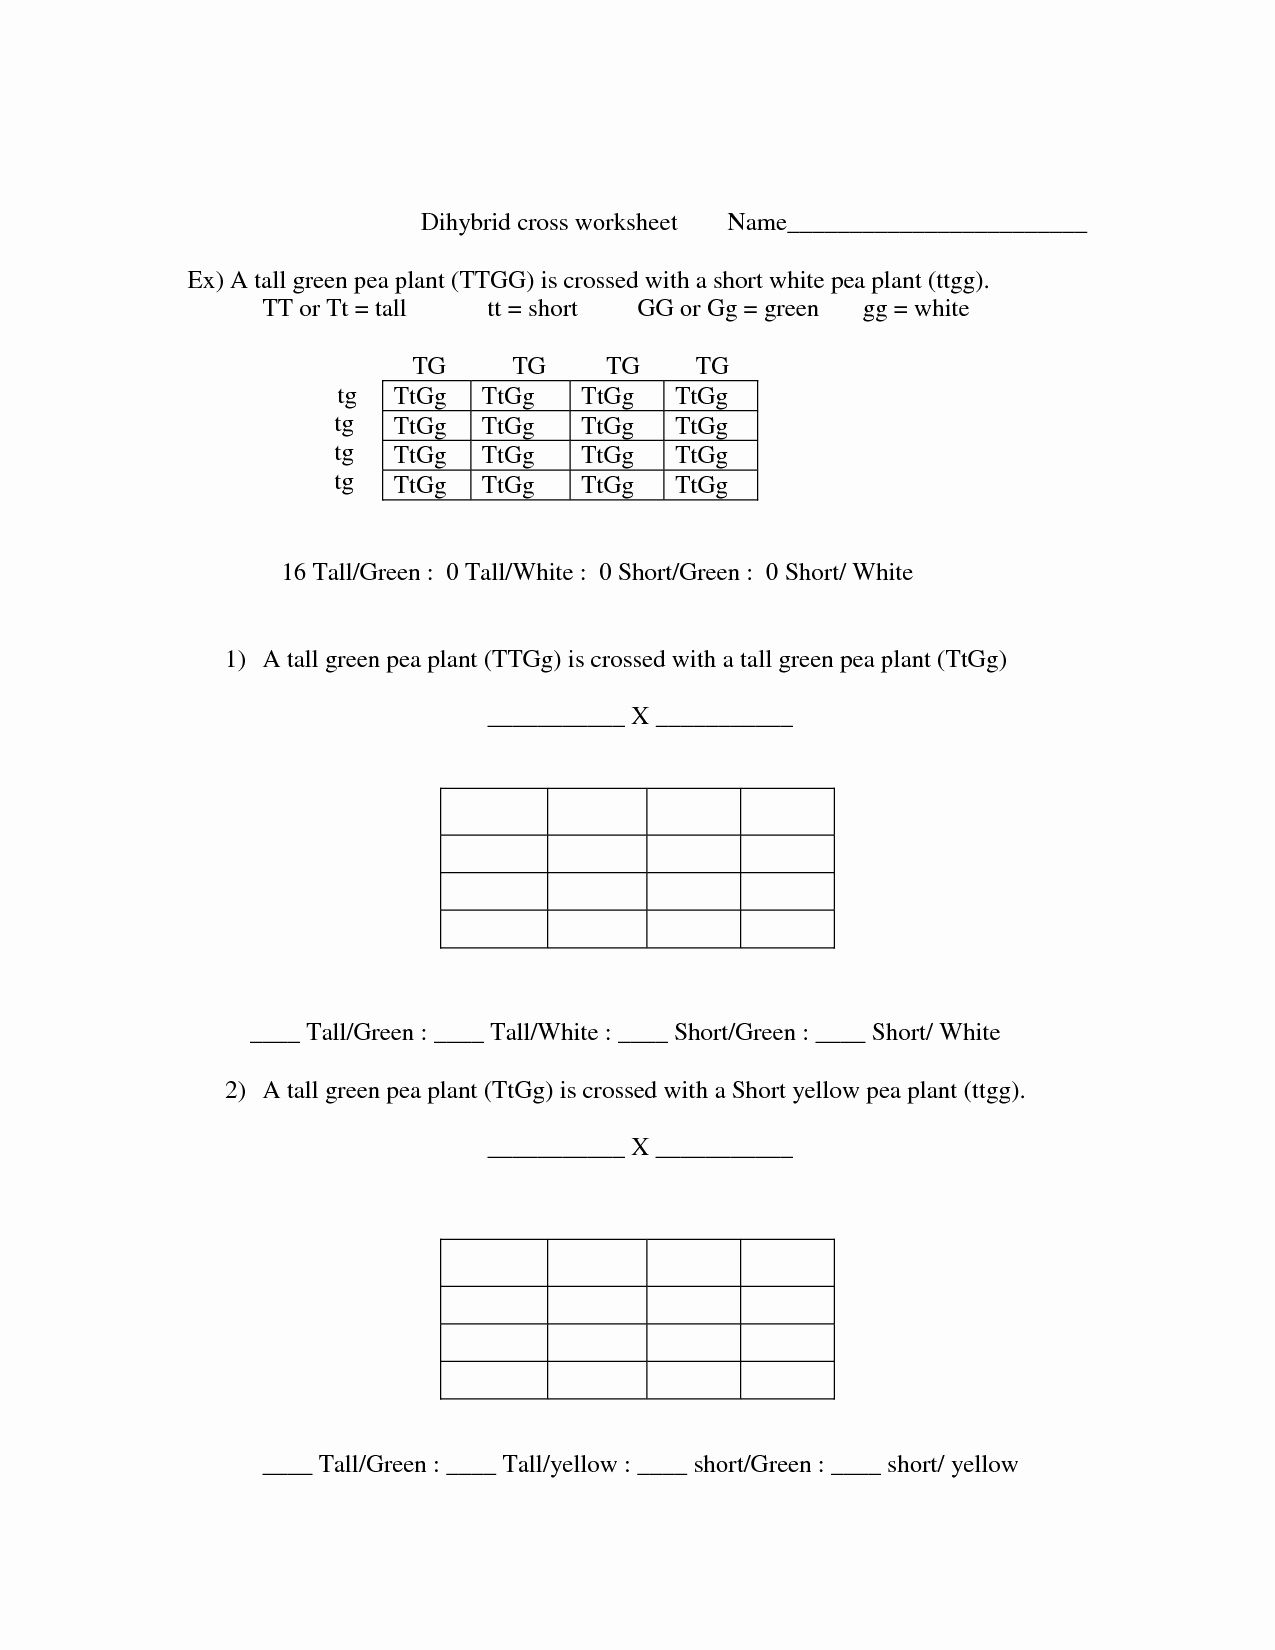 50 Dihybrid Cross Worksheet Answers